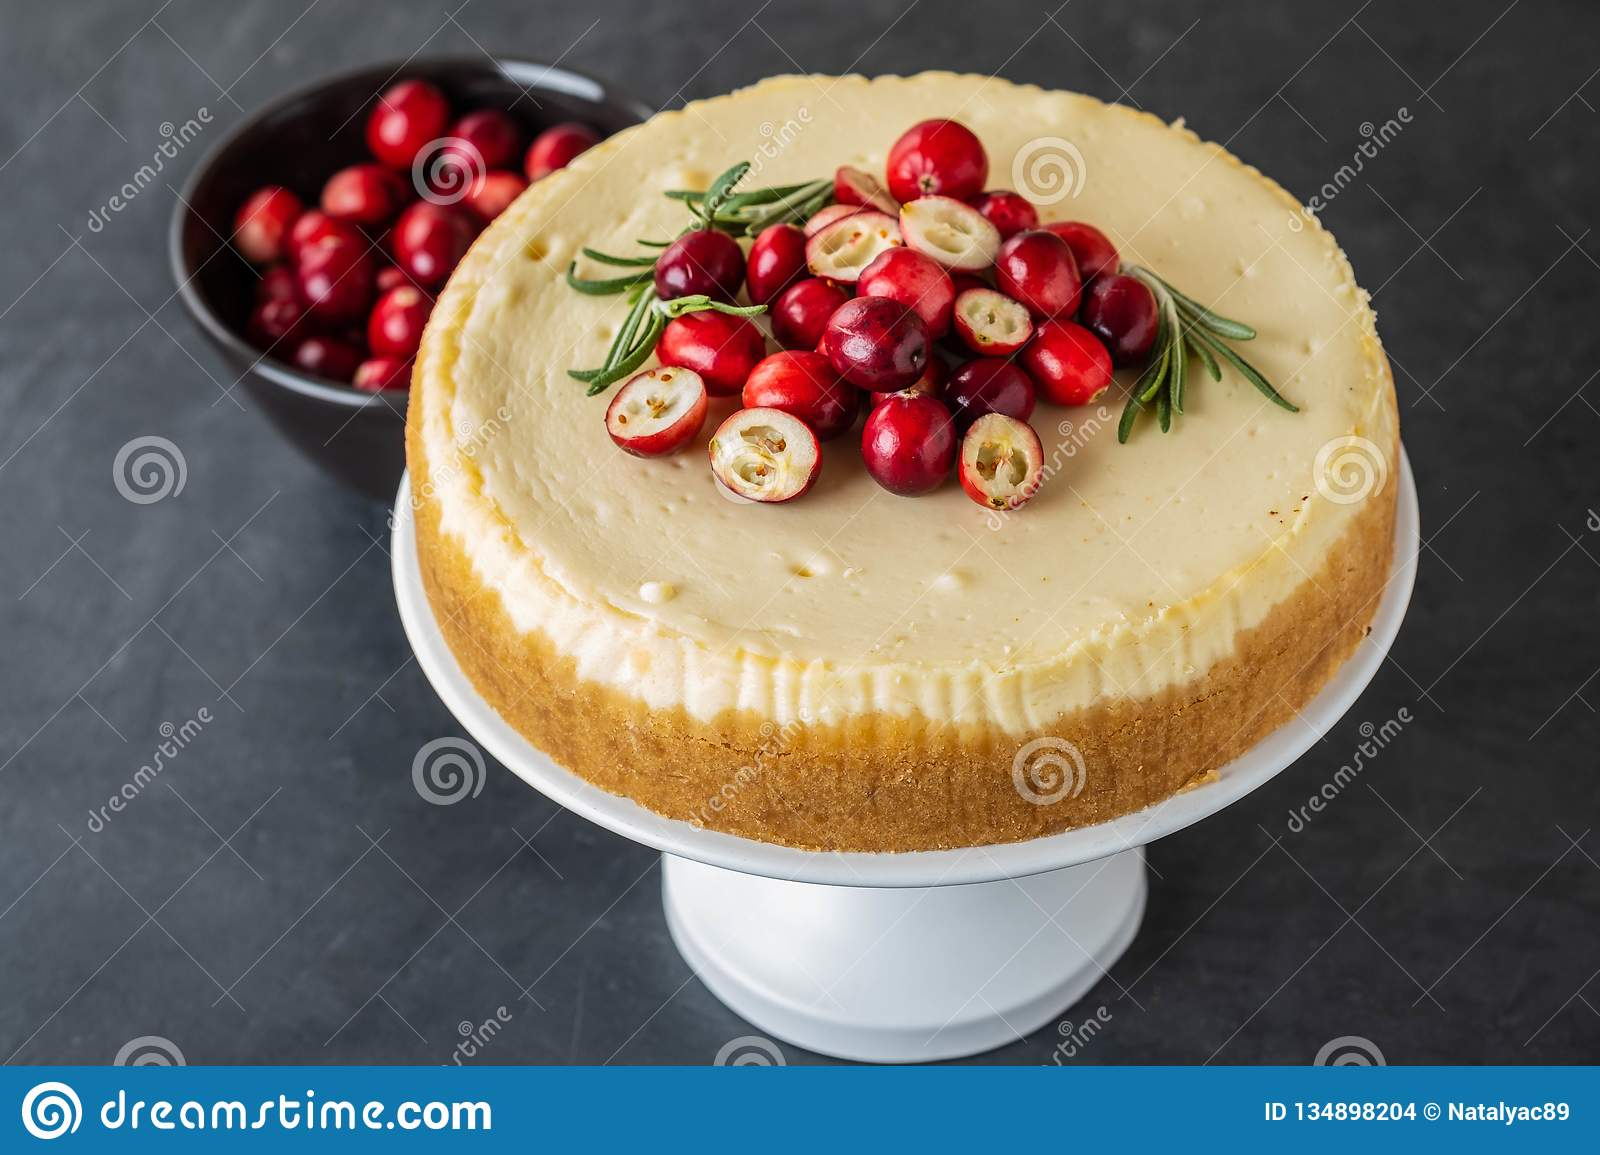 Classic cheesecake with cranberries and rosemary on a dark background. Winter version of cheesecake. Christmas